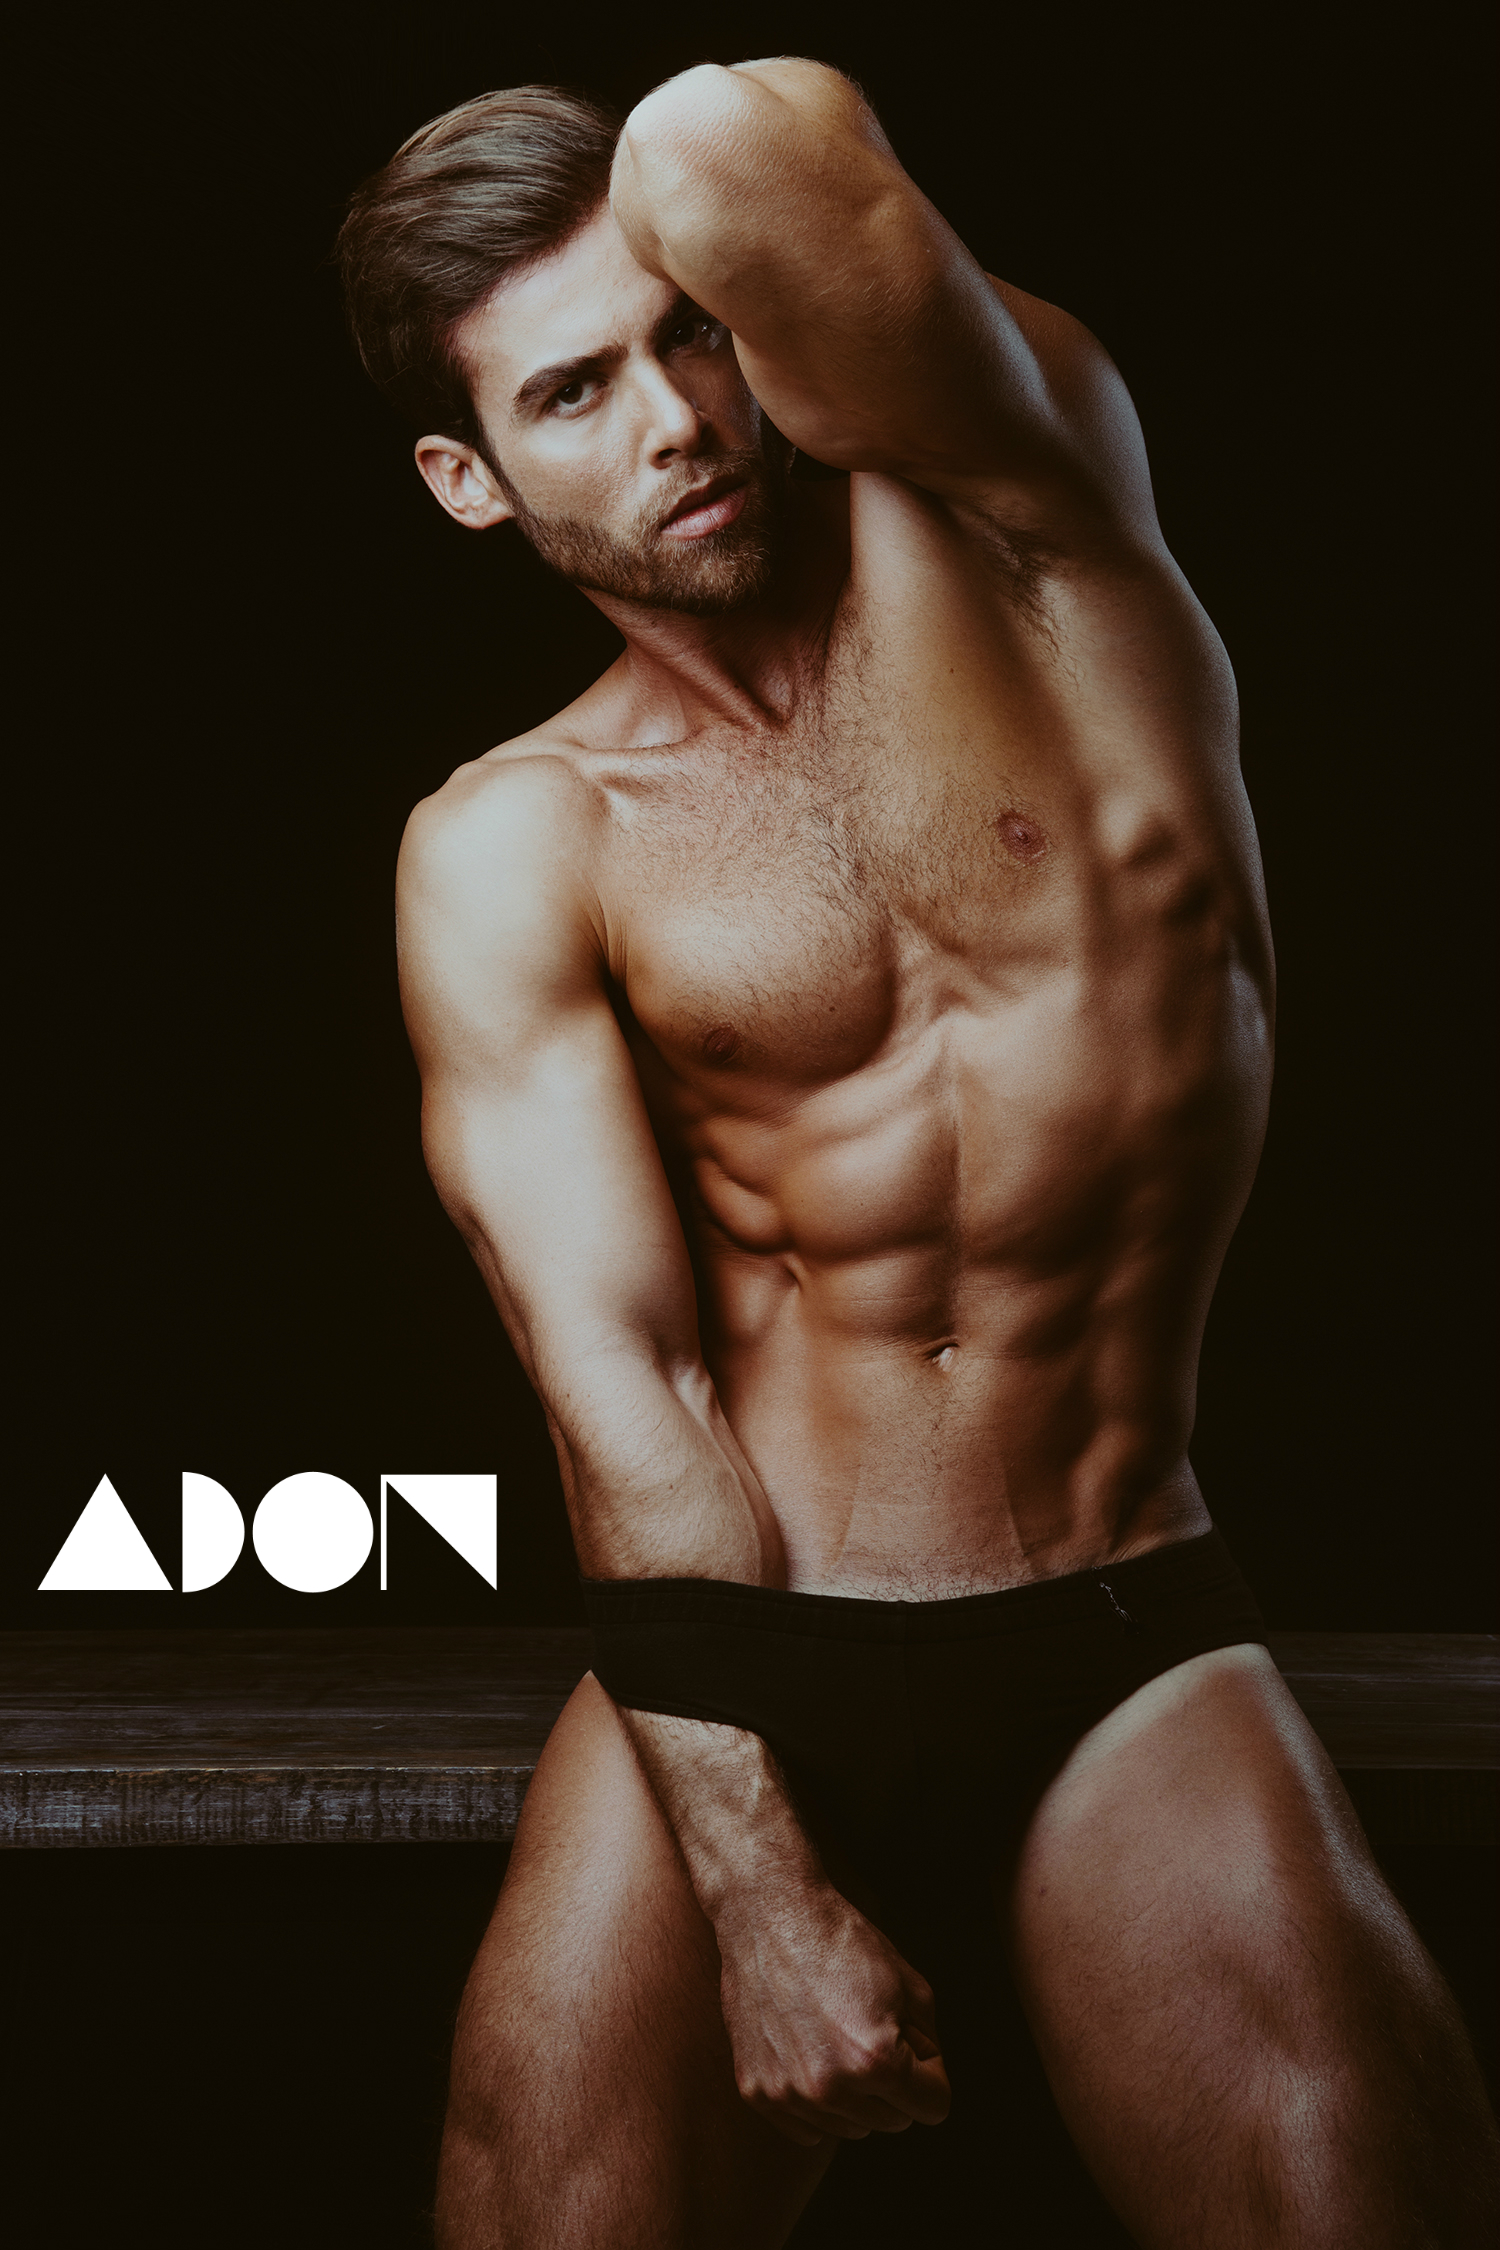 Adon Exclusive: Model David Ortega By Luis De La Luz